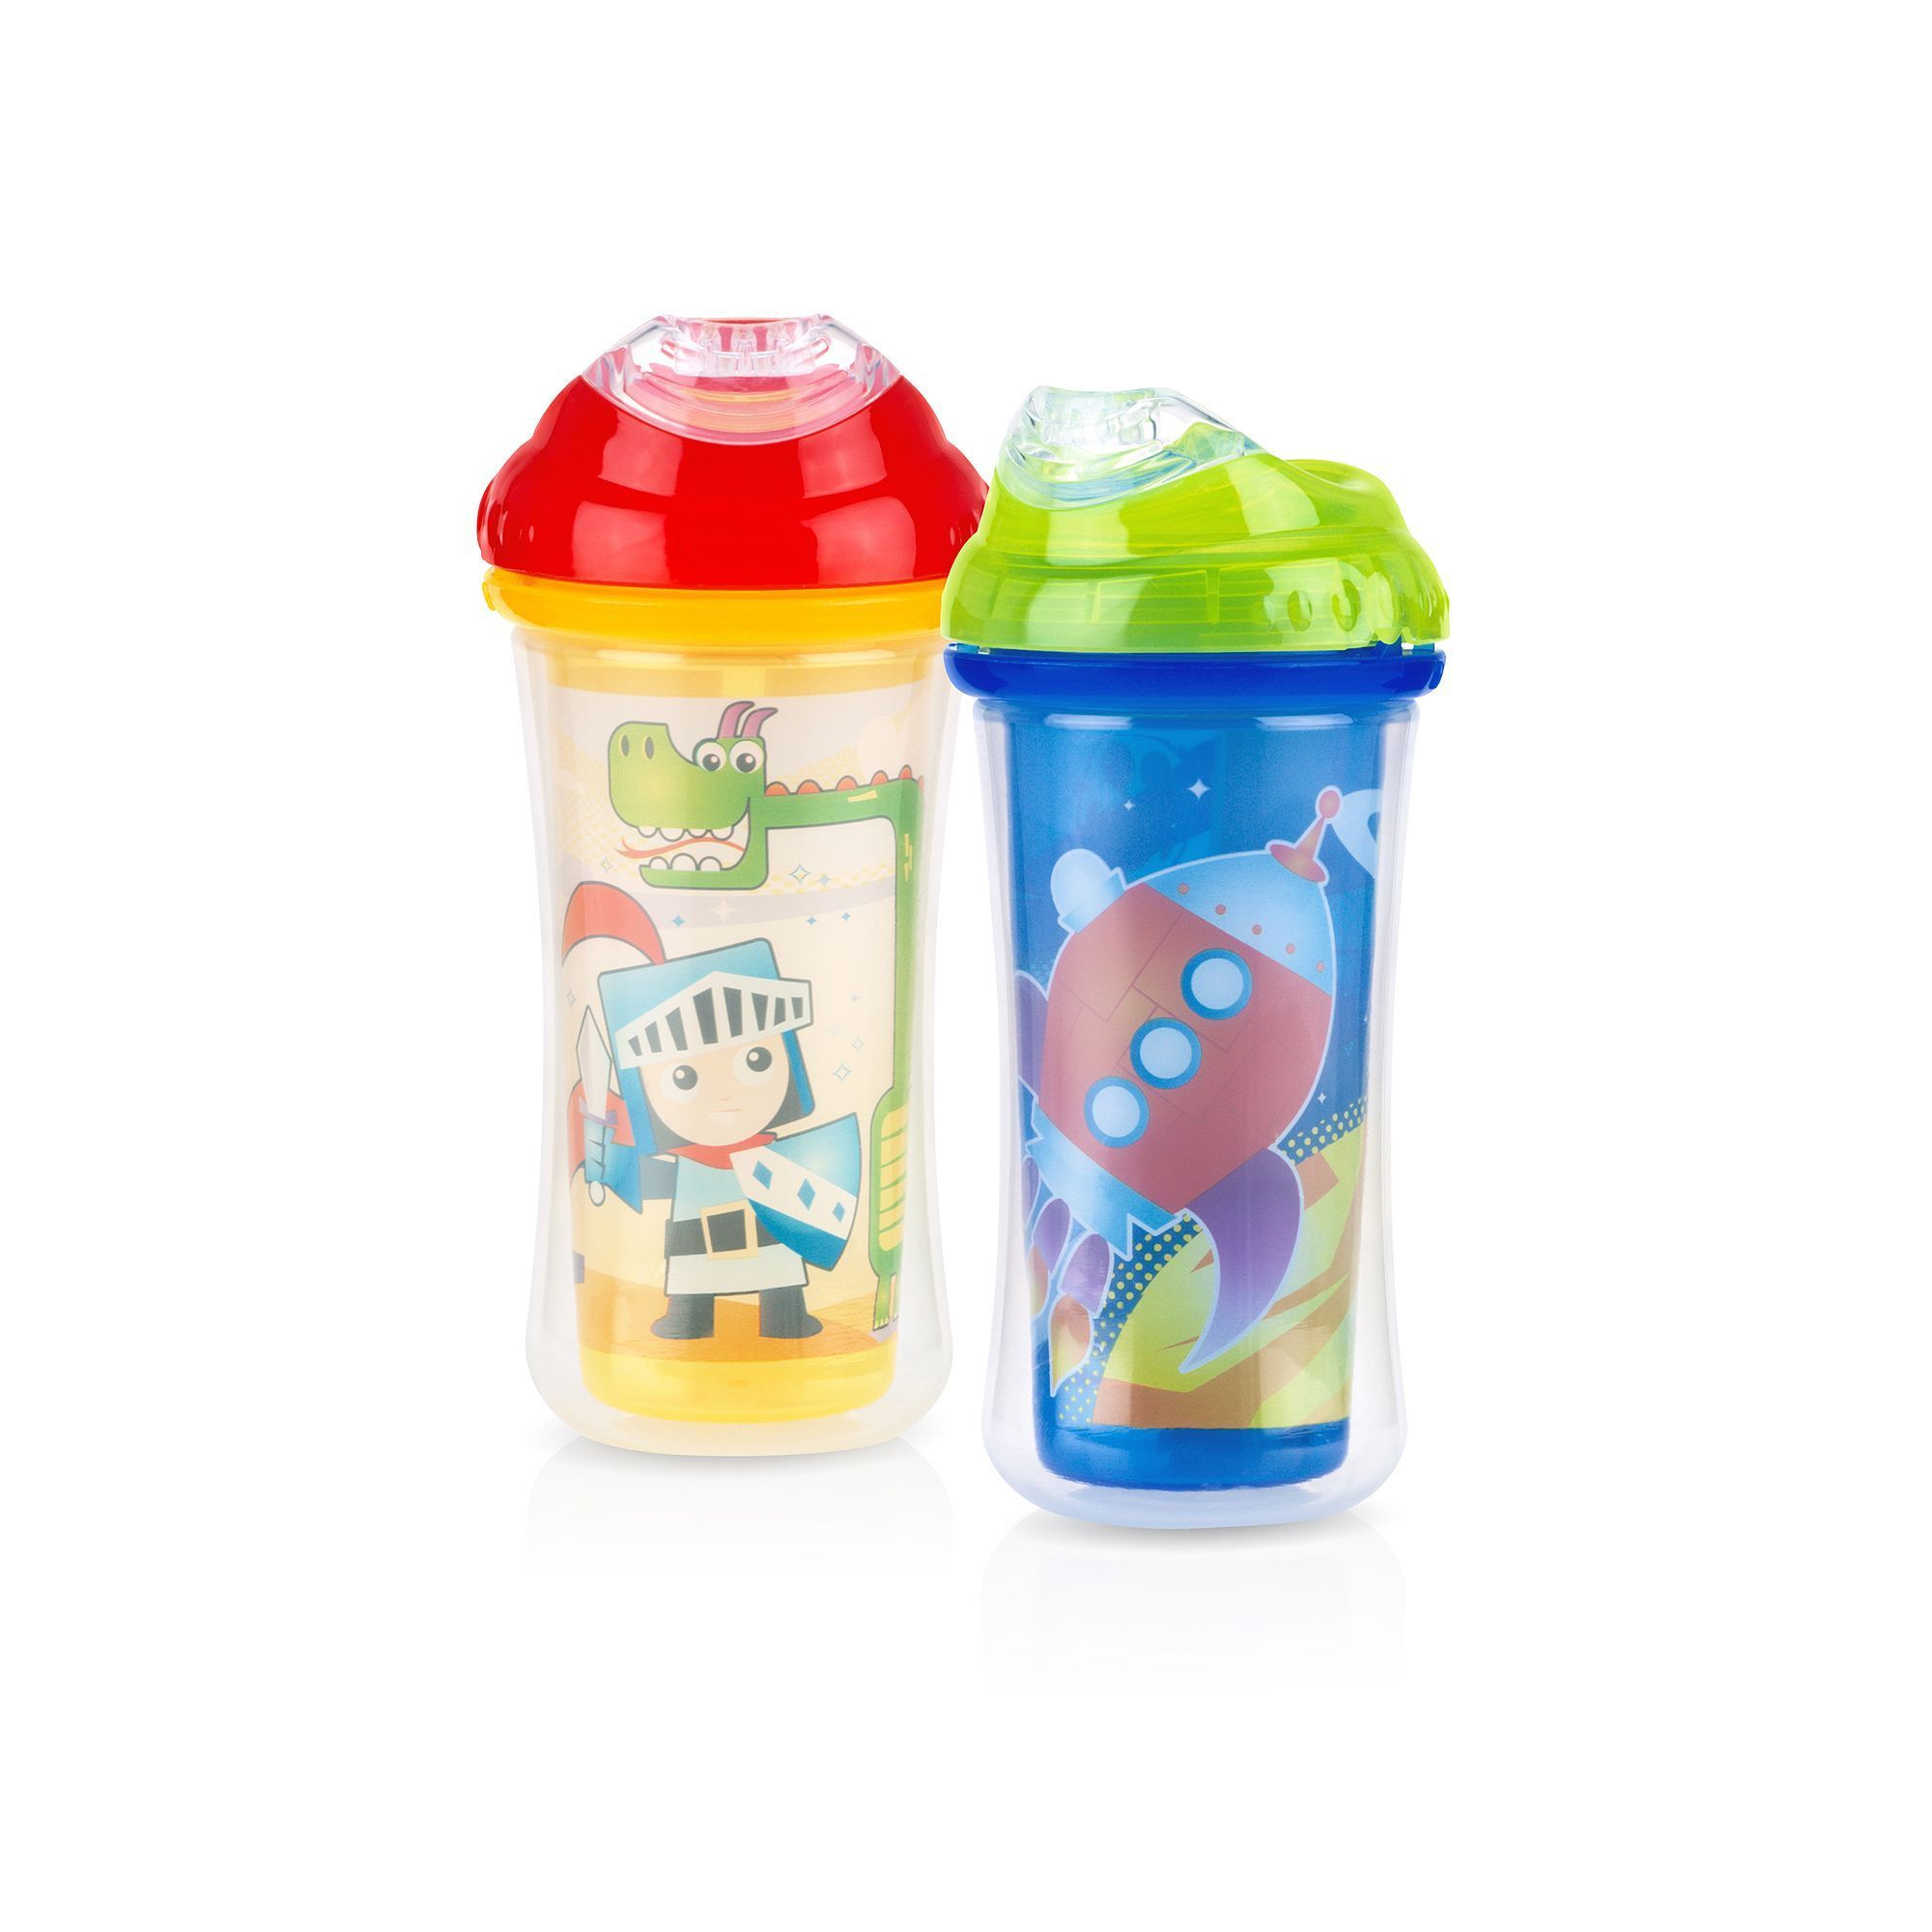 Nuby 9 Oz Insulated Clik It Cool Sipper Bottle Multicolor Baby Bottles Bottle Toddler Sippy Cups